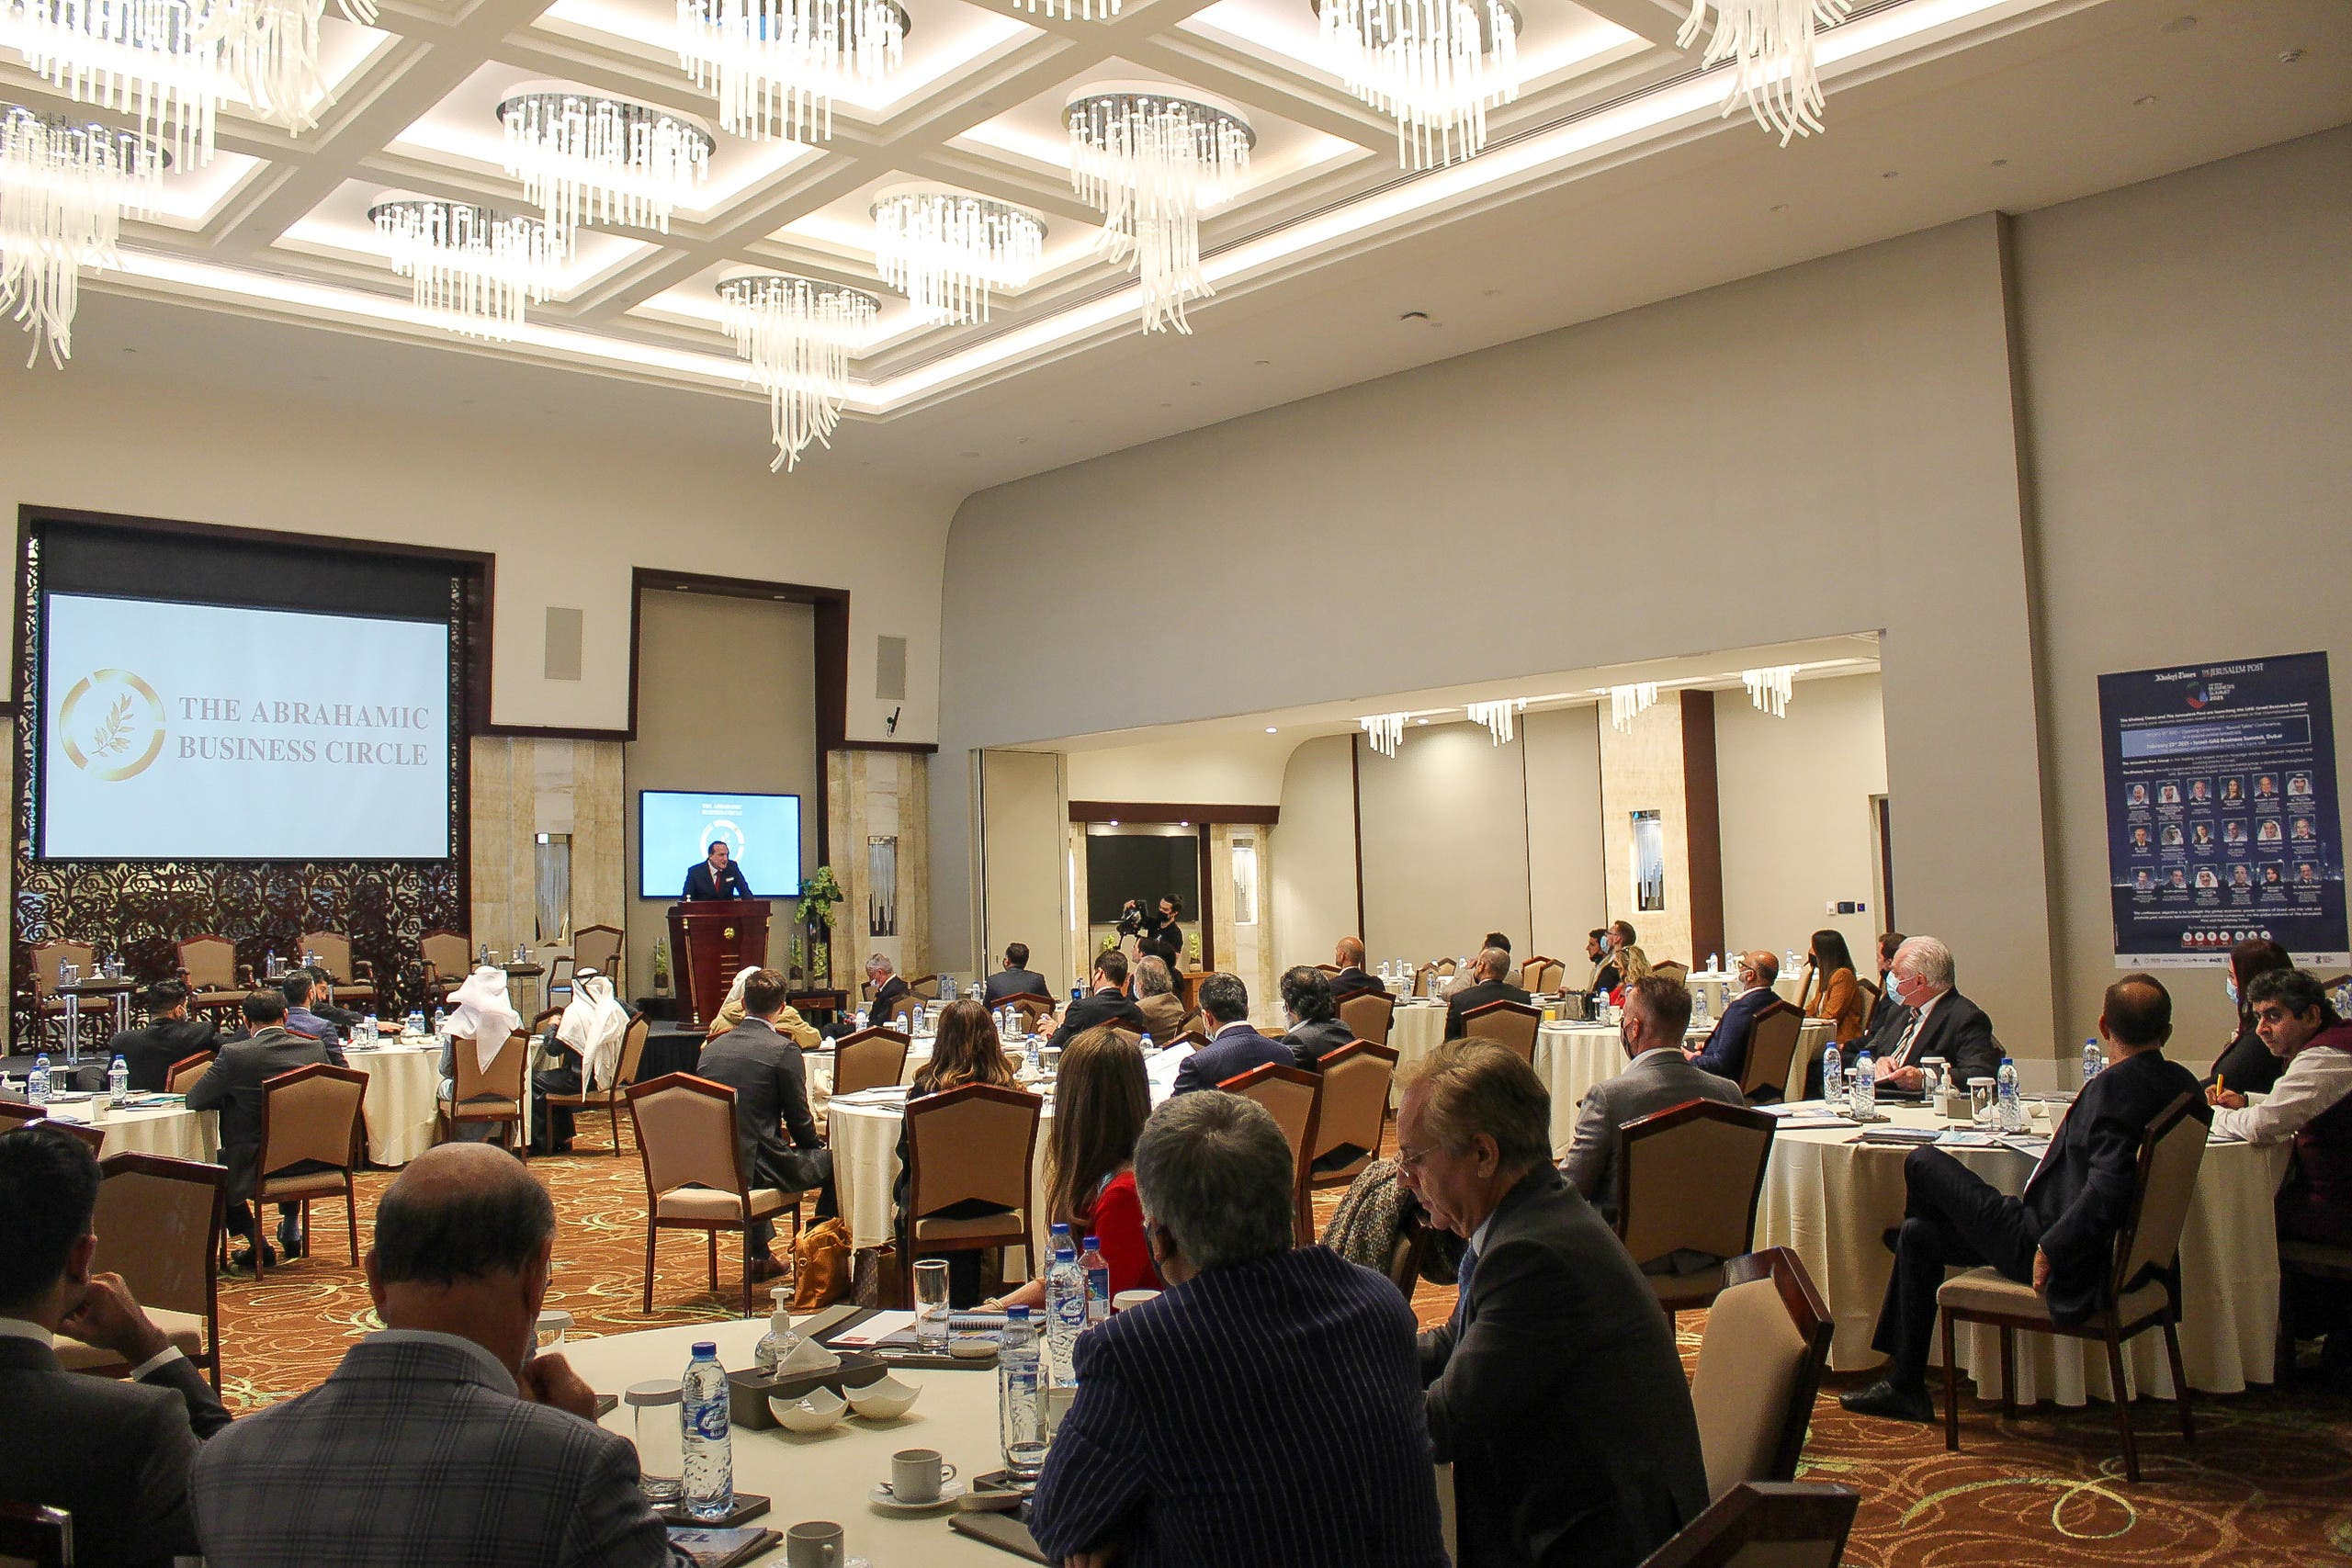 A view of the Abrahamic Business Circle conference on building UAE-Israel relations on January 28, 2021 in Dubai. (Supplied)